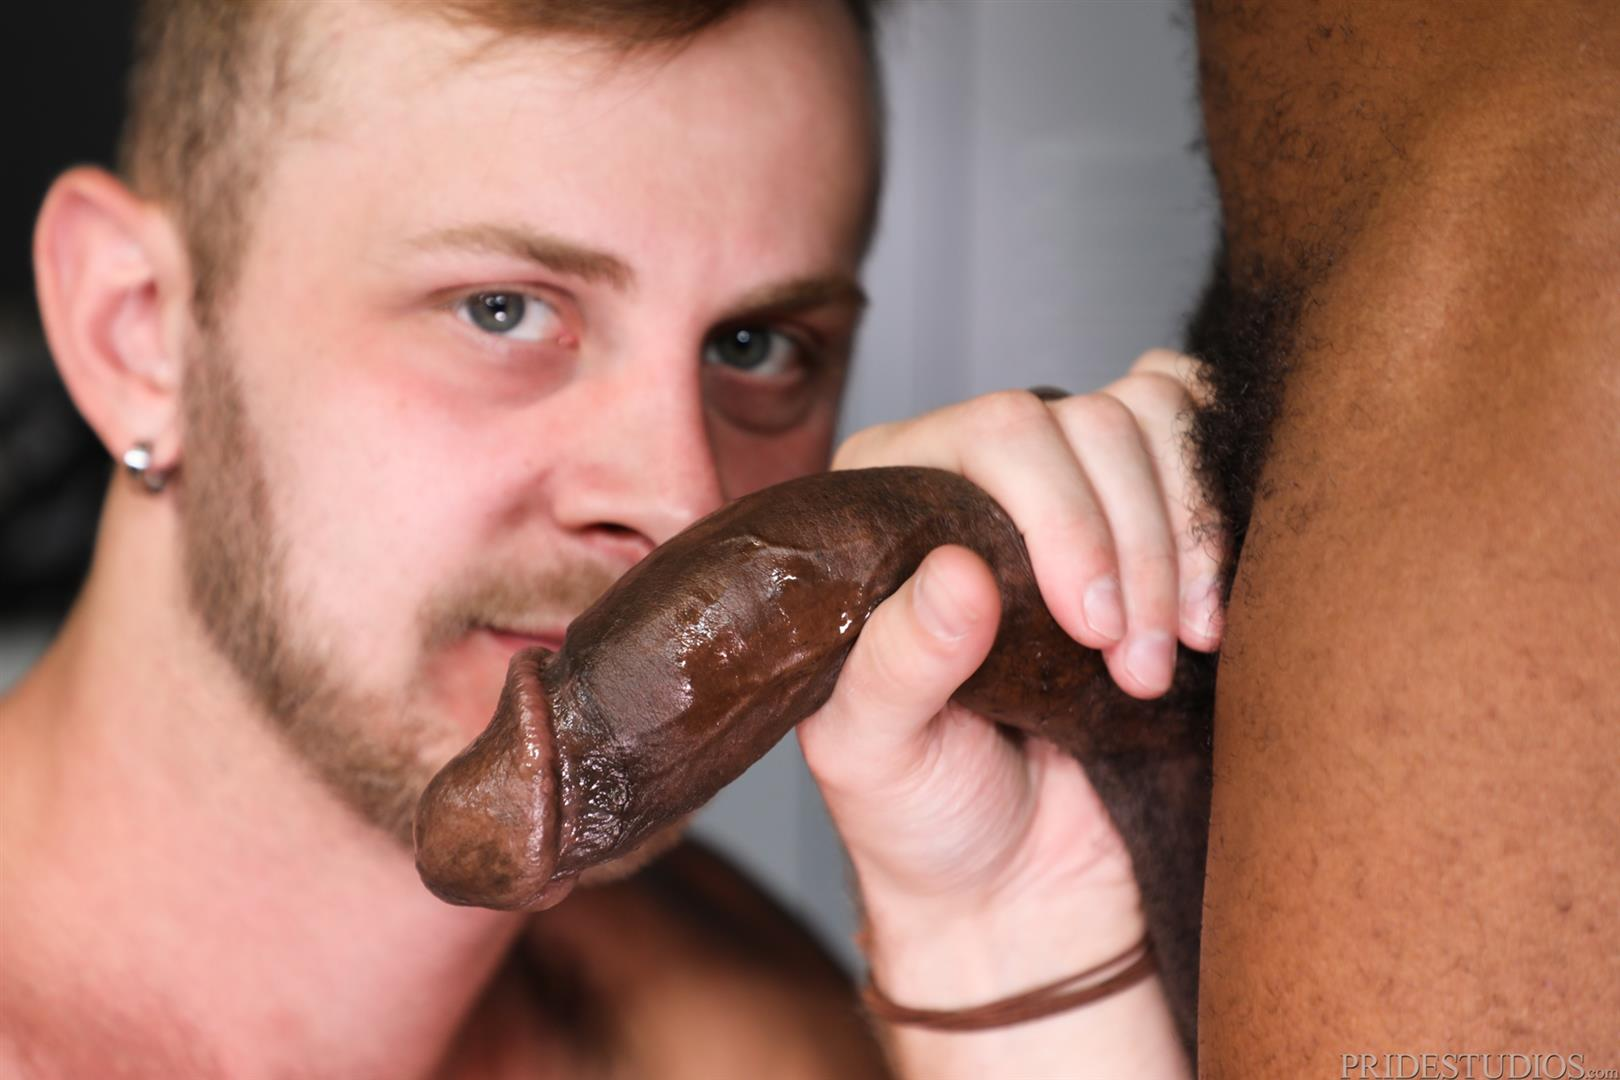 Extra-Big-Dicks-Osiris-Blade-and-Chandler-Scott-Interracial-Bareback-Fucking-04 Osiris Blade Bareback Fucking Chandler Scott With His Big Black Dick